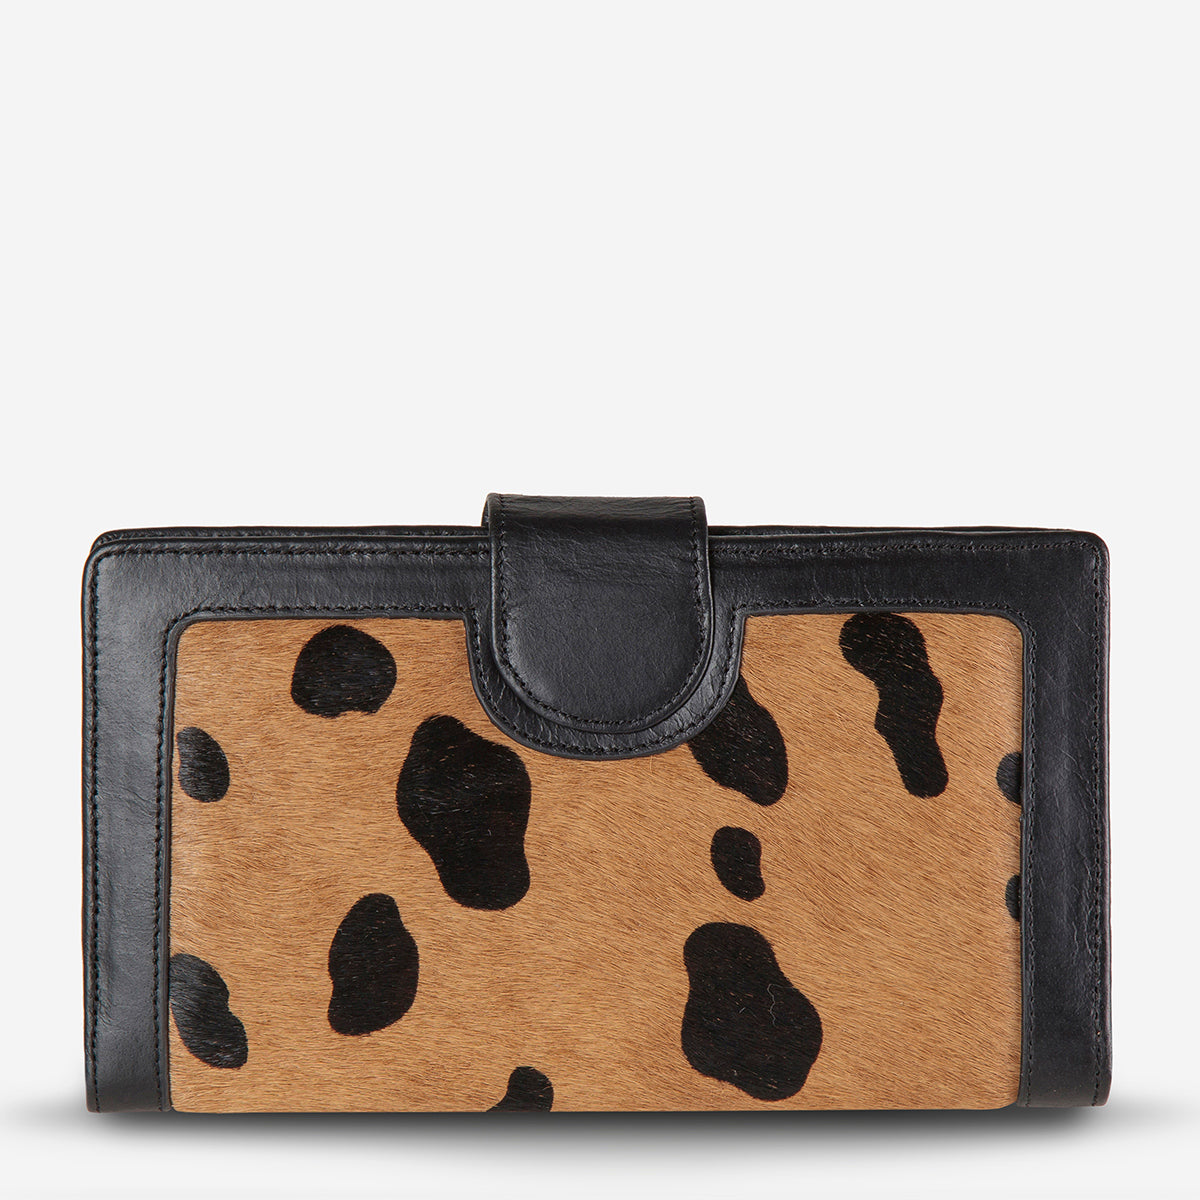 Status Anxiety Doris Large Leather Wallet - Wild Cat